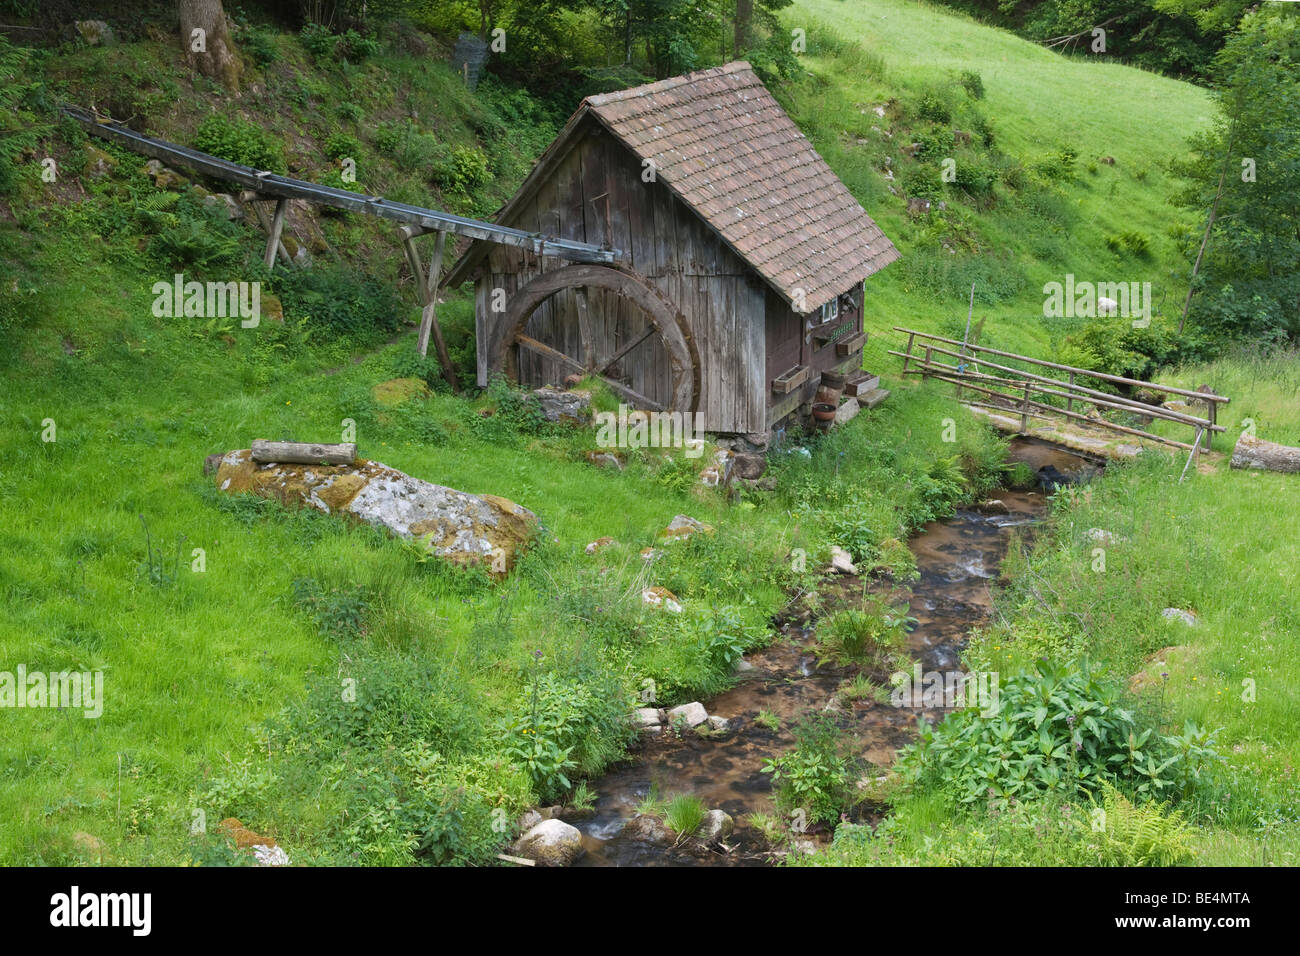 Schembach mill, built 1770, Reichenbachtal Valley, Black Forest, Baden-Wuerttemberg, Germany, Europe - Stock Image